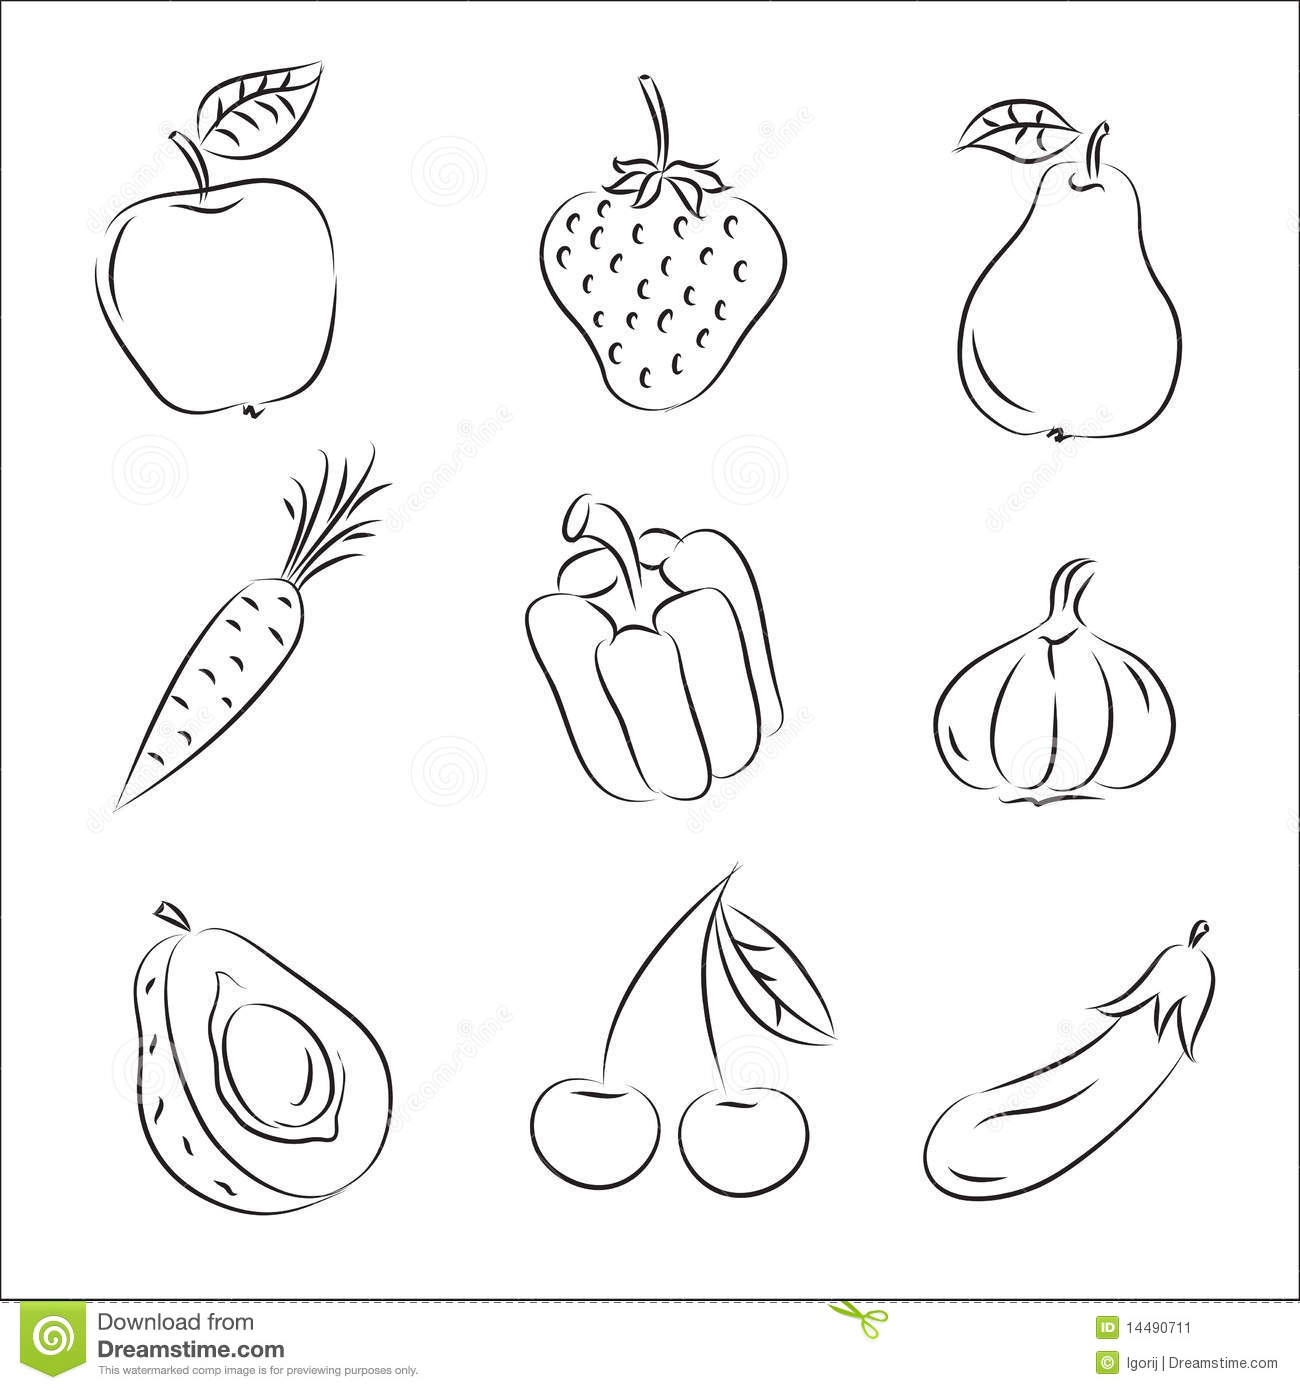 Fruits and Vegetables stock vector. Illustration of eating